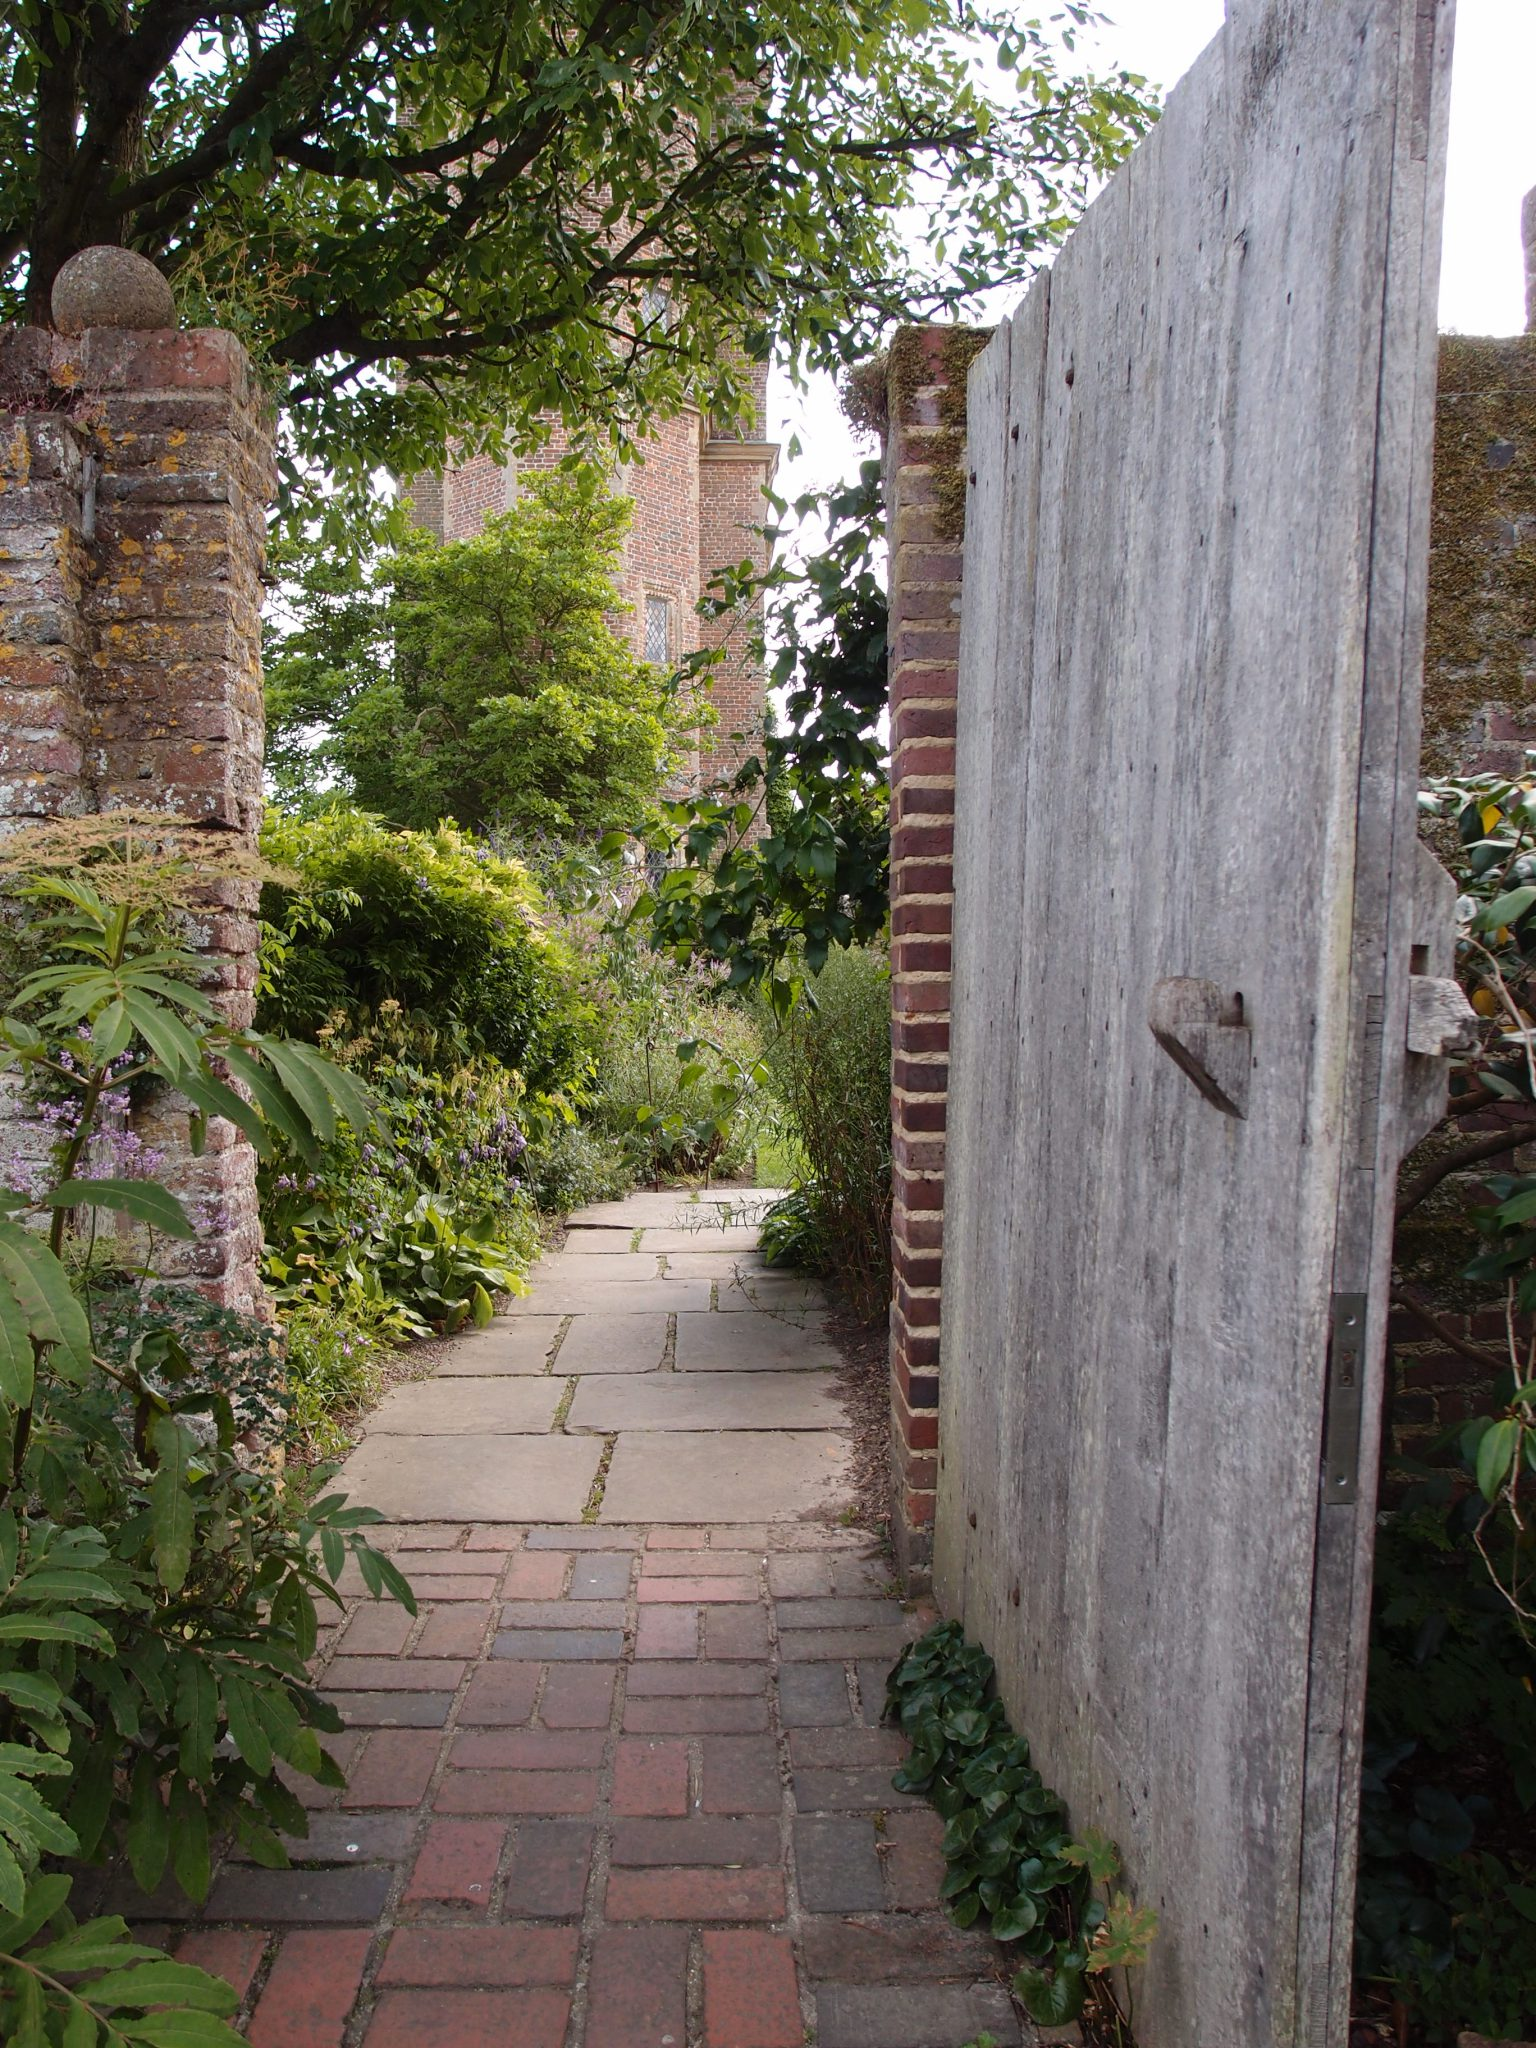 We leave the White Garden through the Bishop's Gate, then turn right, and head toward the Top Courtyard's Purple Border.